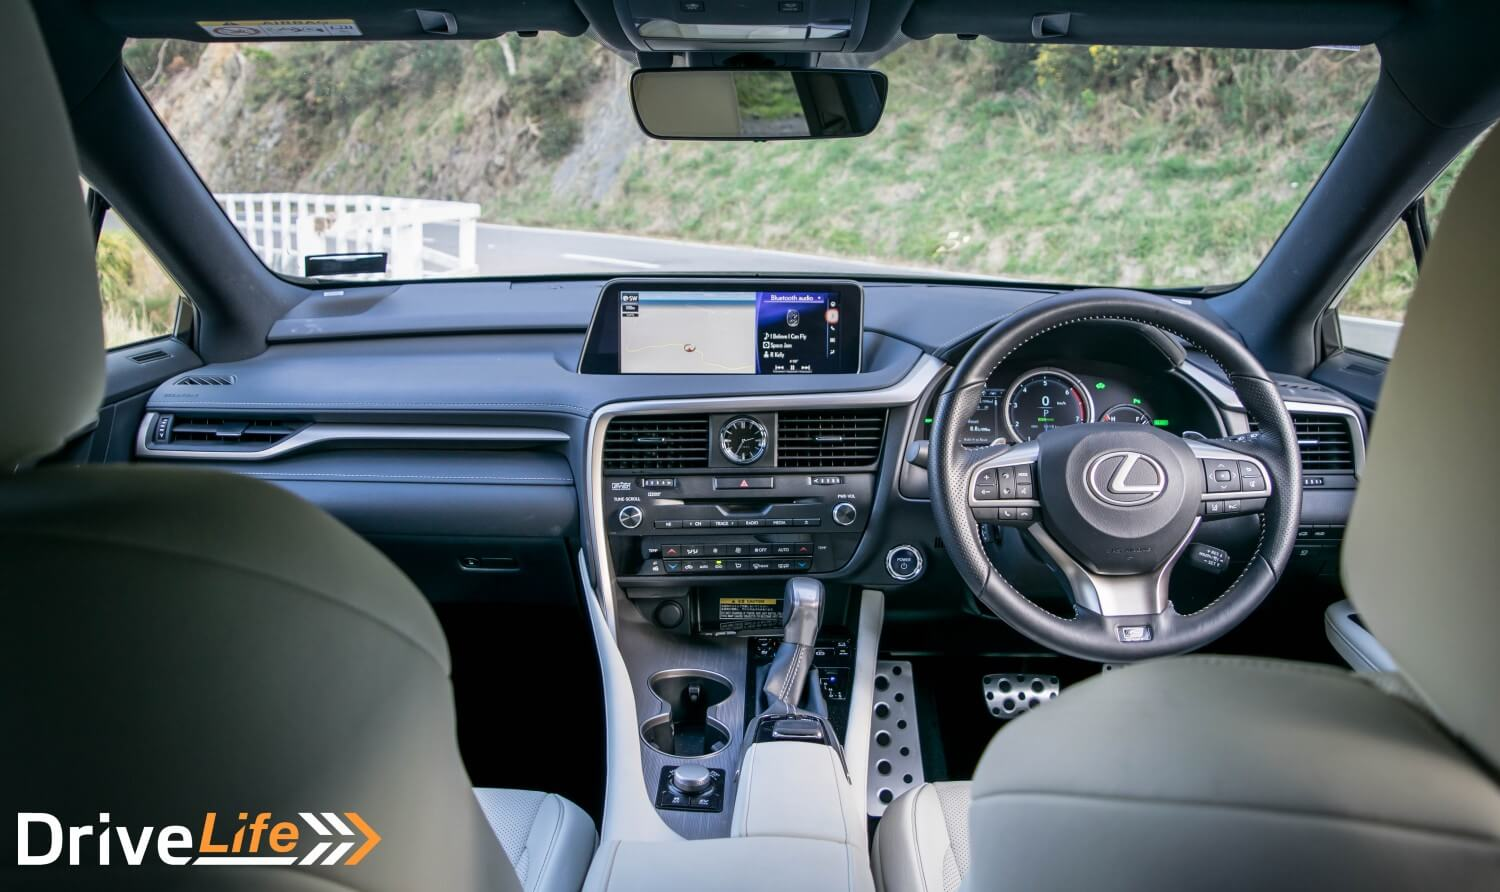 Drive-Life-NZ-Car-Review-Lexus-RX450h-F-Sport-2016-14